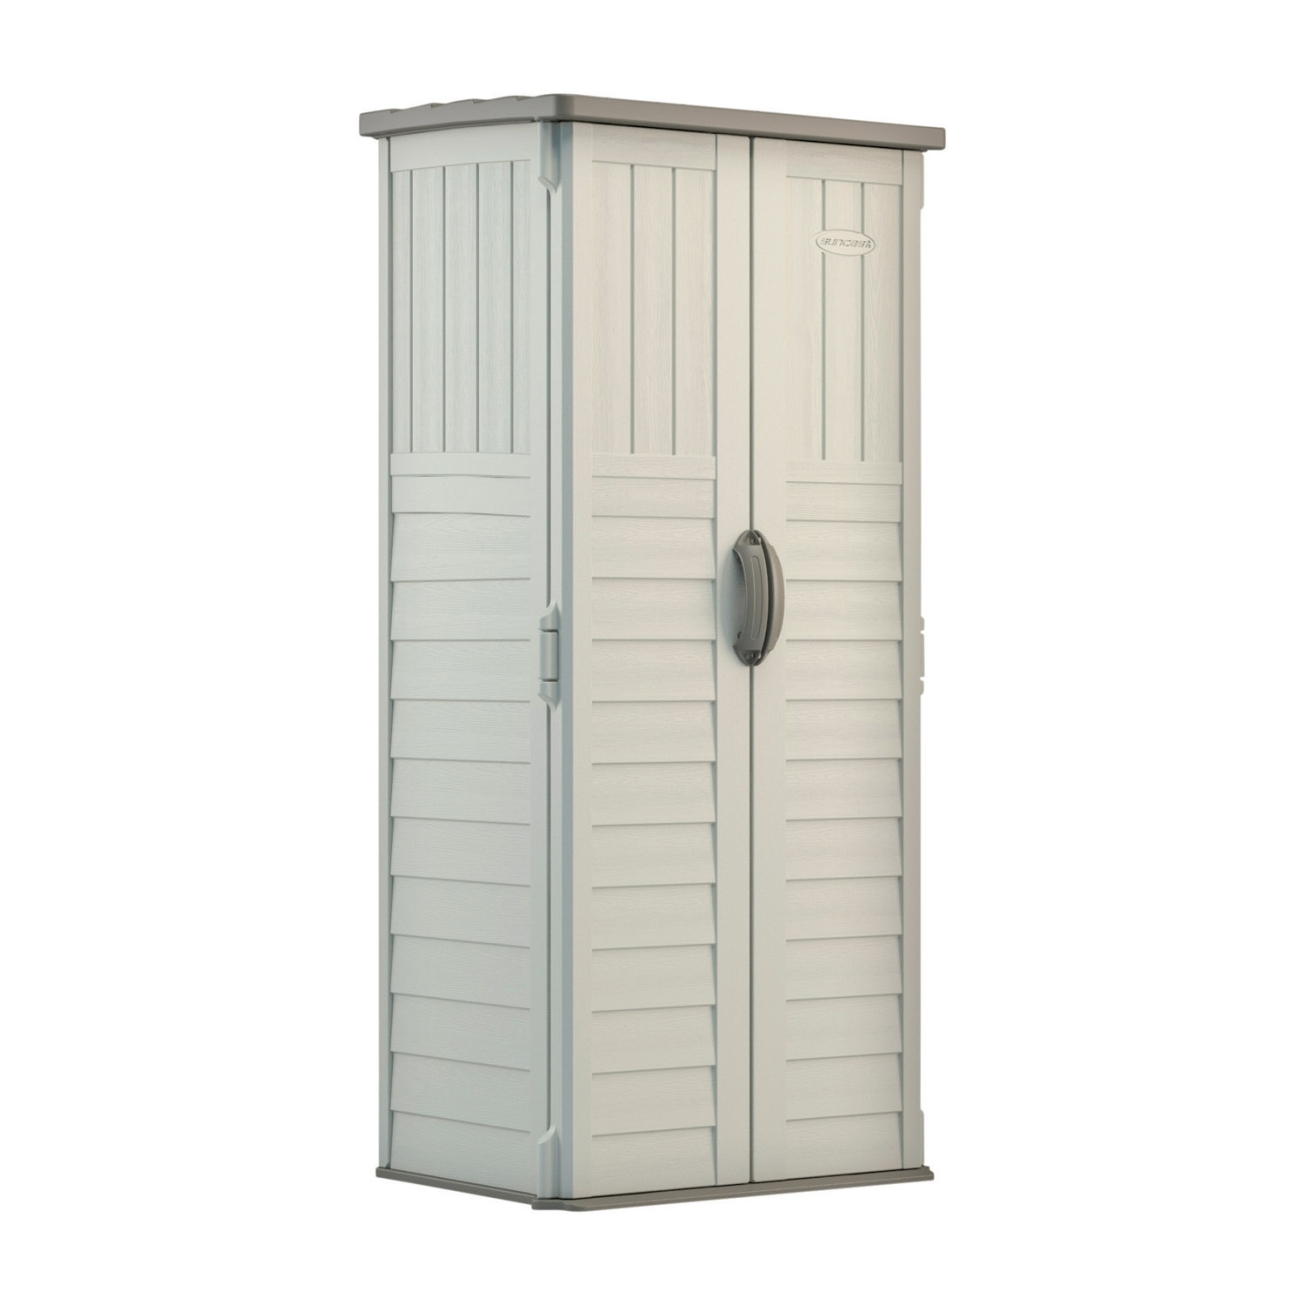 Vertical Storage Cabinet Outdoor